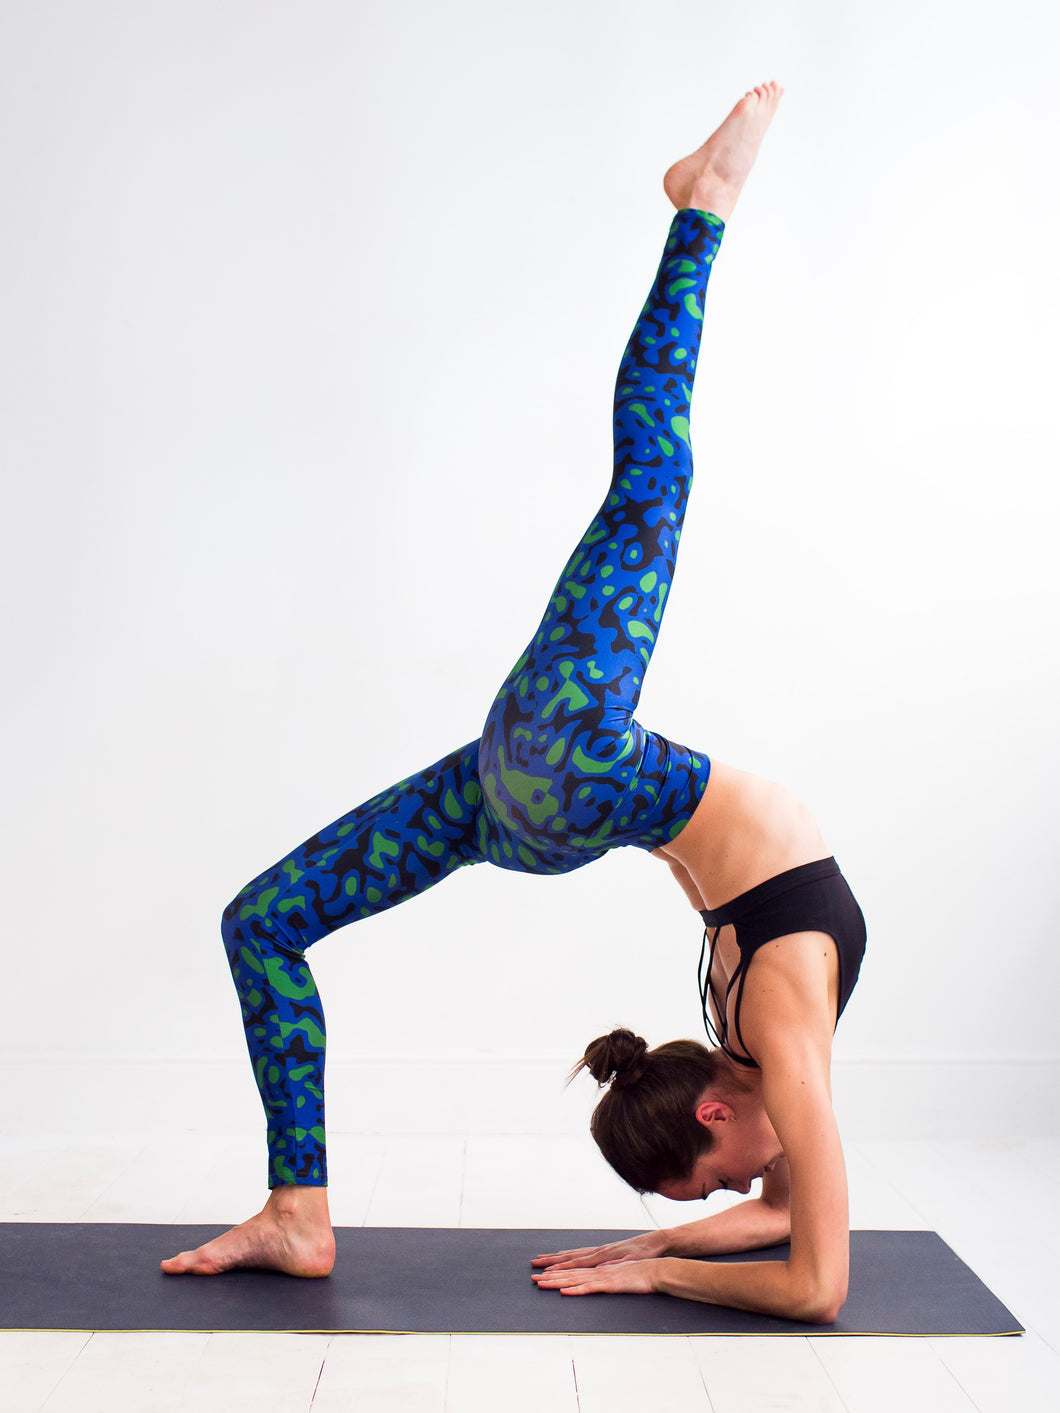 Archipelagos | Efesto Designs yoga leggings | fluids mixing inspiration, blue/green/black non repeating patterns